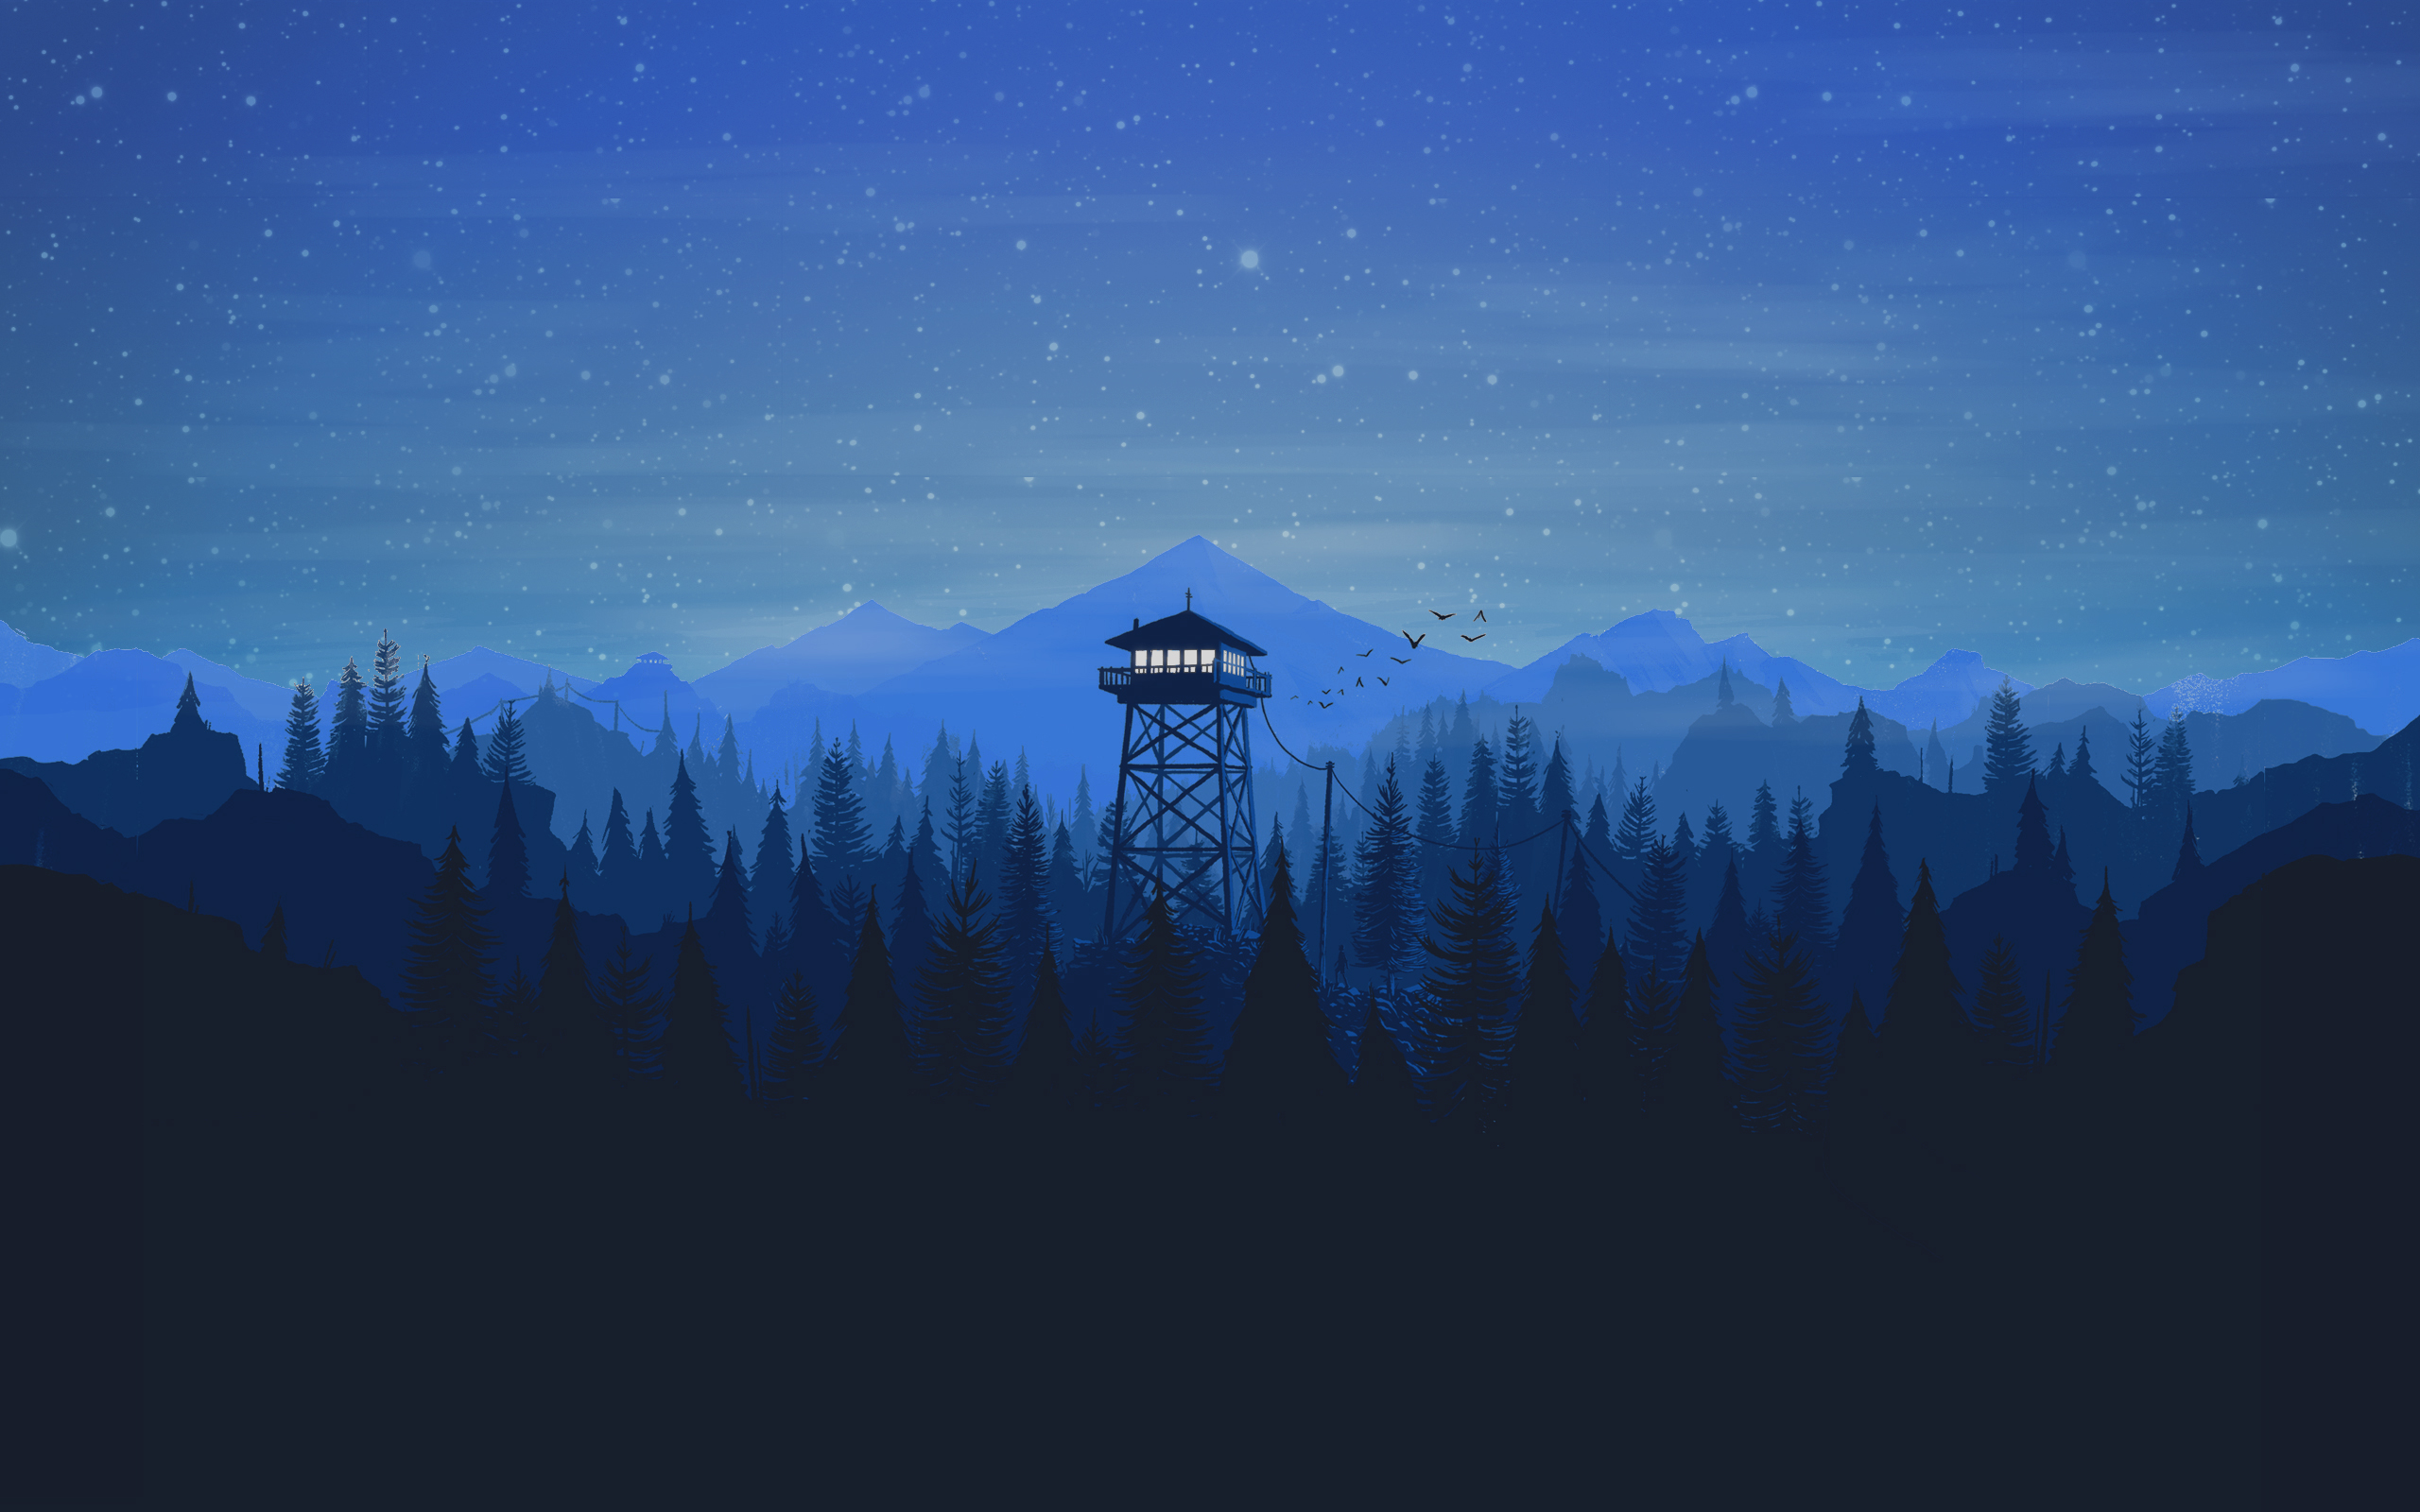 Firewatch hd games 4k wallpapers images backgrounds - Digital art wallpaper 3840x1080 ...